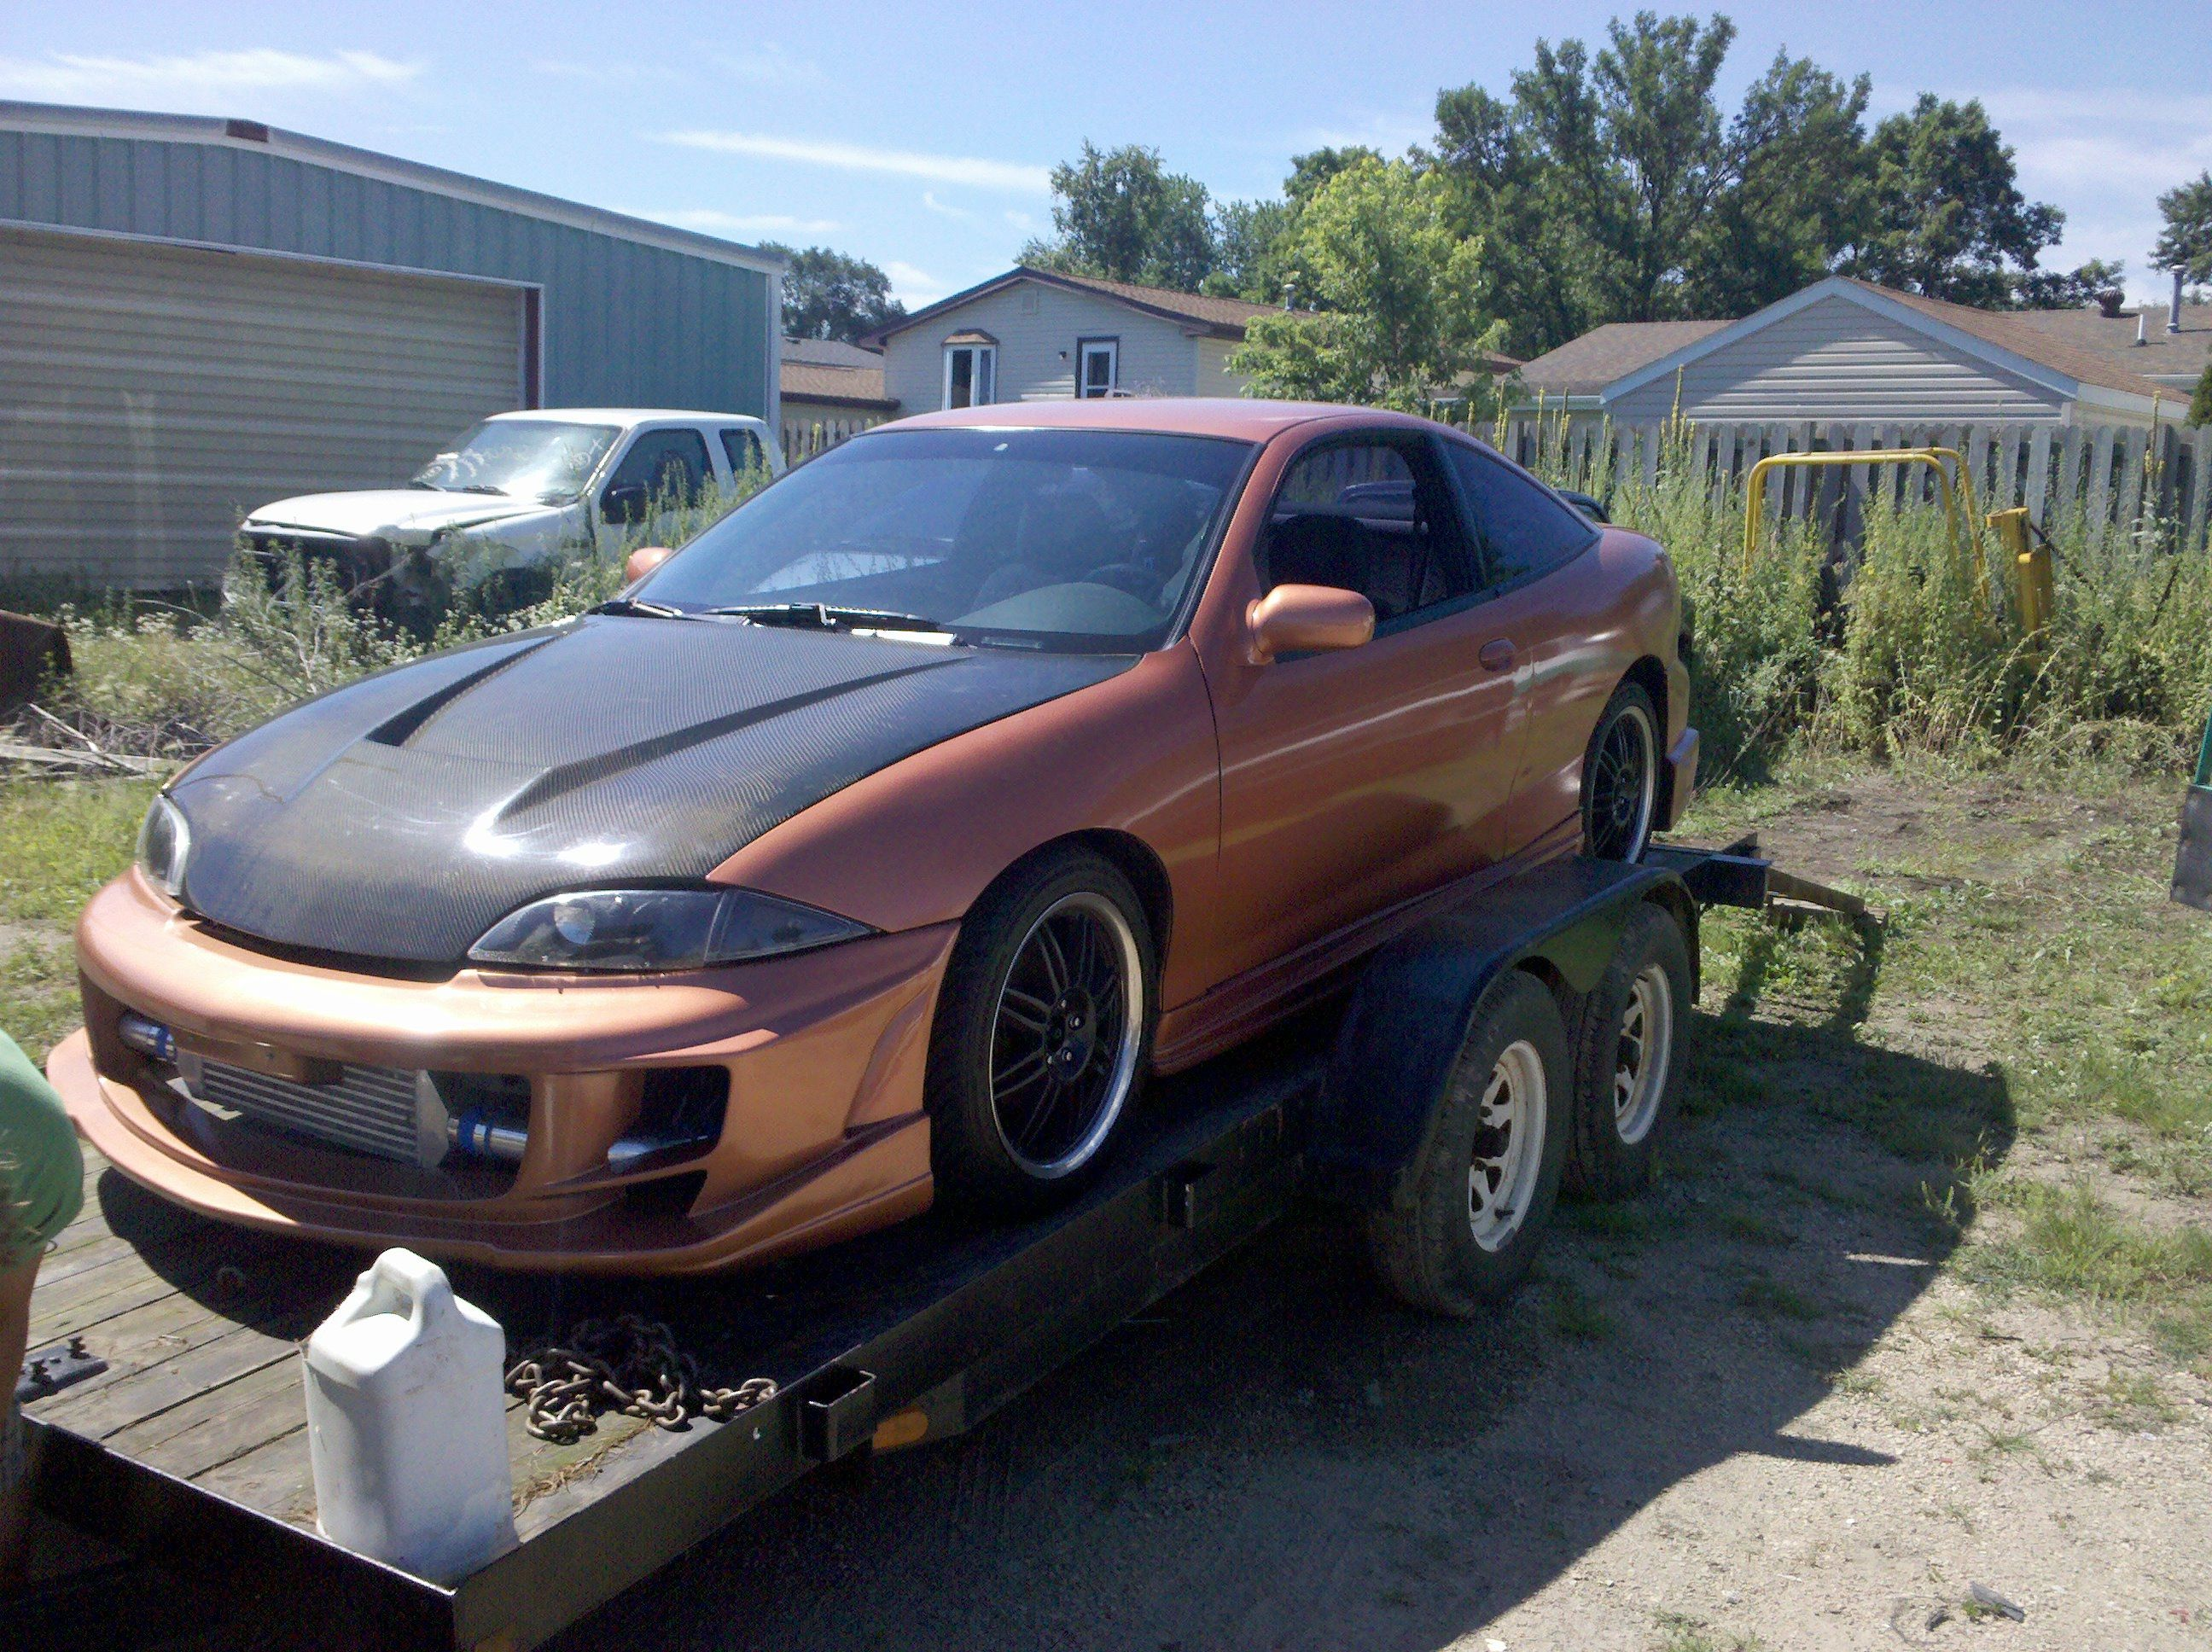 medium resolution of view another n204mk 1996 chevrolet cavalier post photo 15168220 of n204mk s 1996 chevrolet cavalier z24 coupe 2d